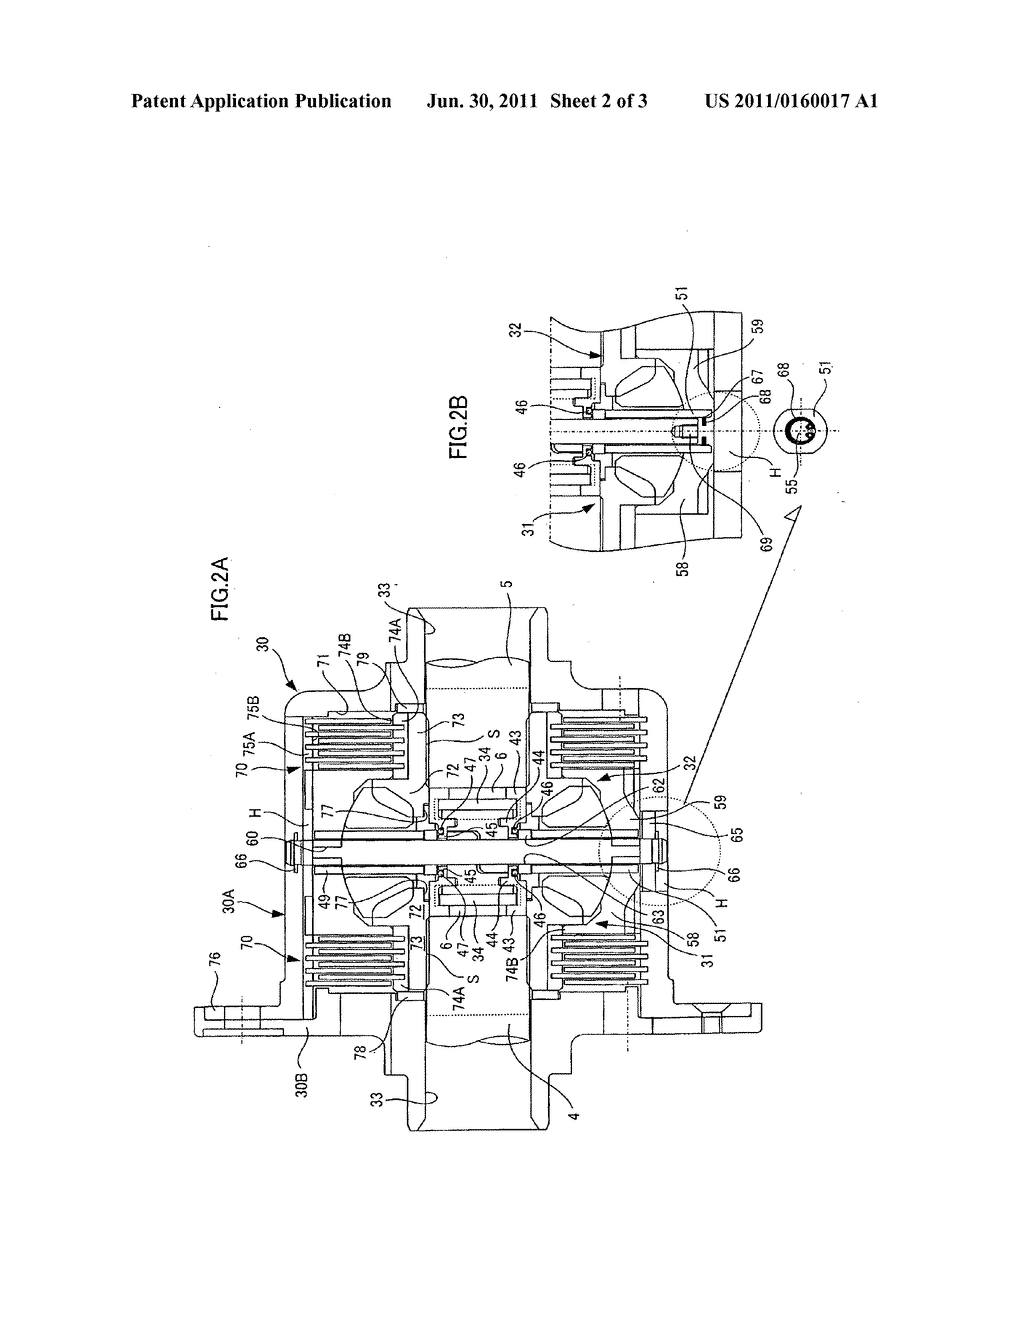 Structure for coupling differential assembly with drive